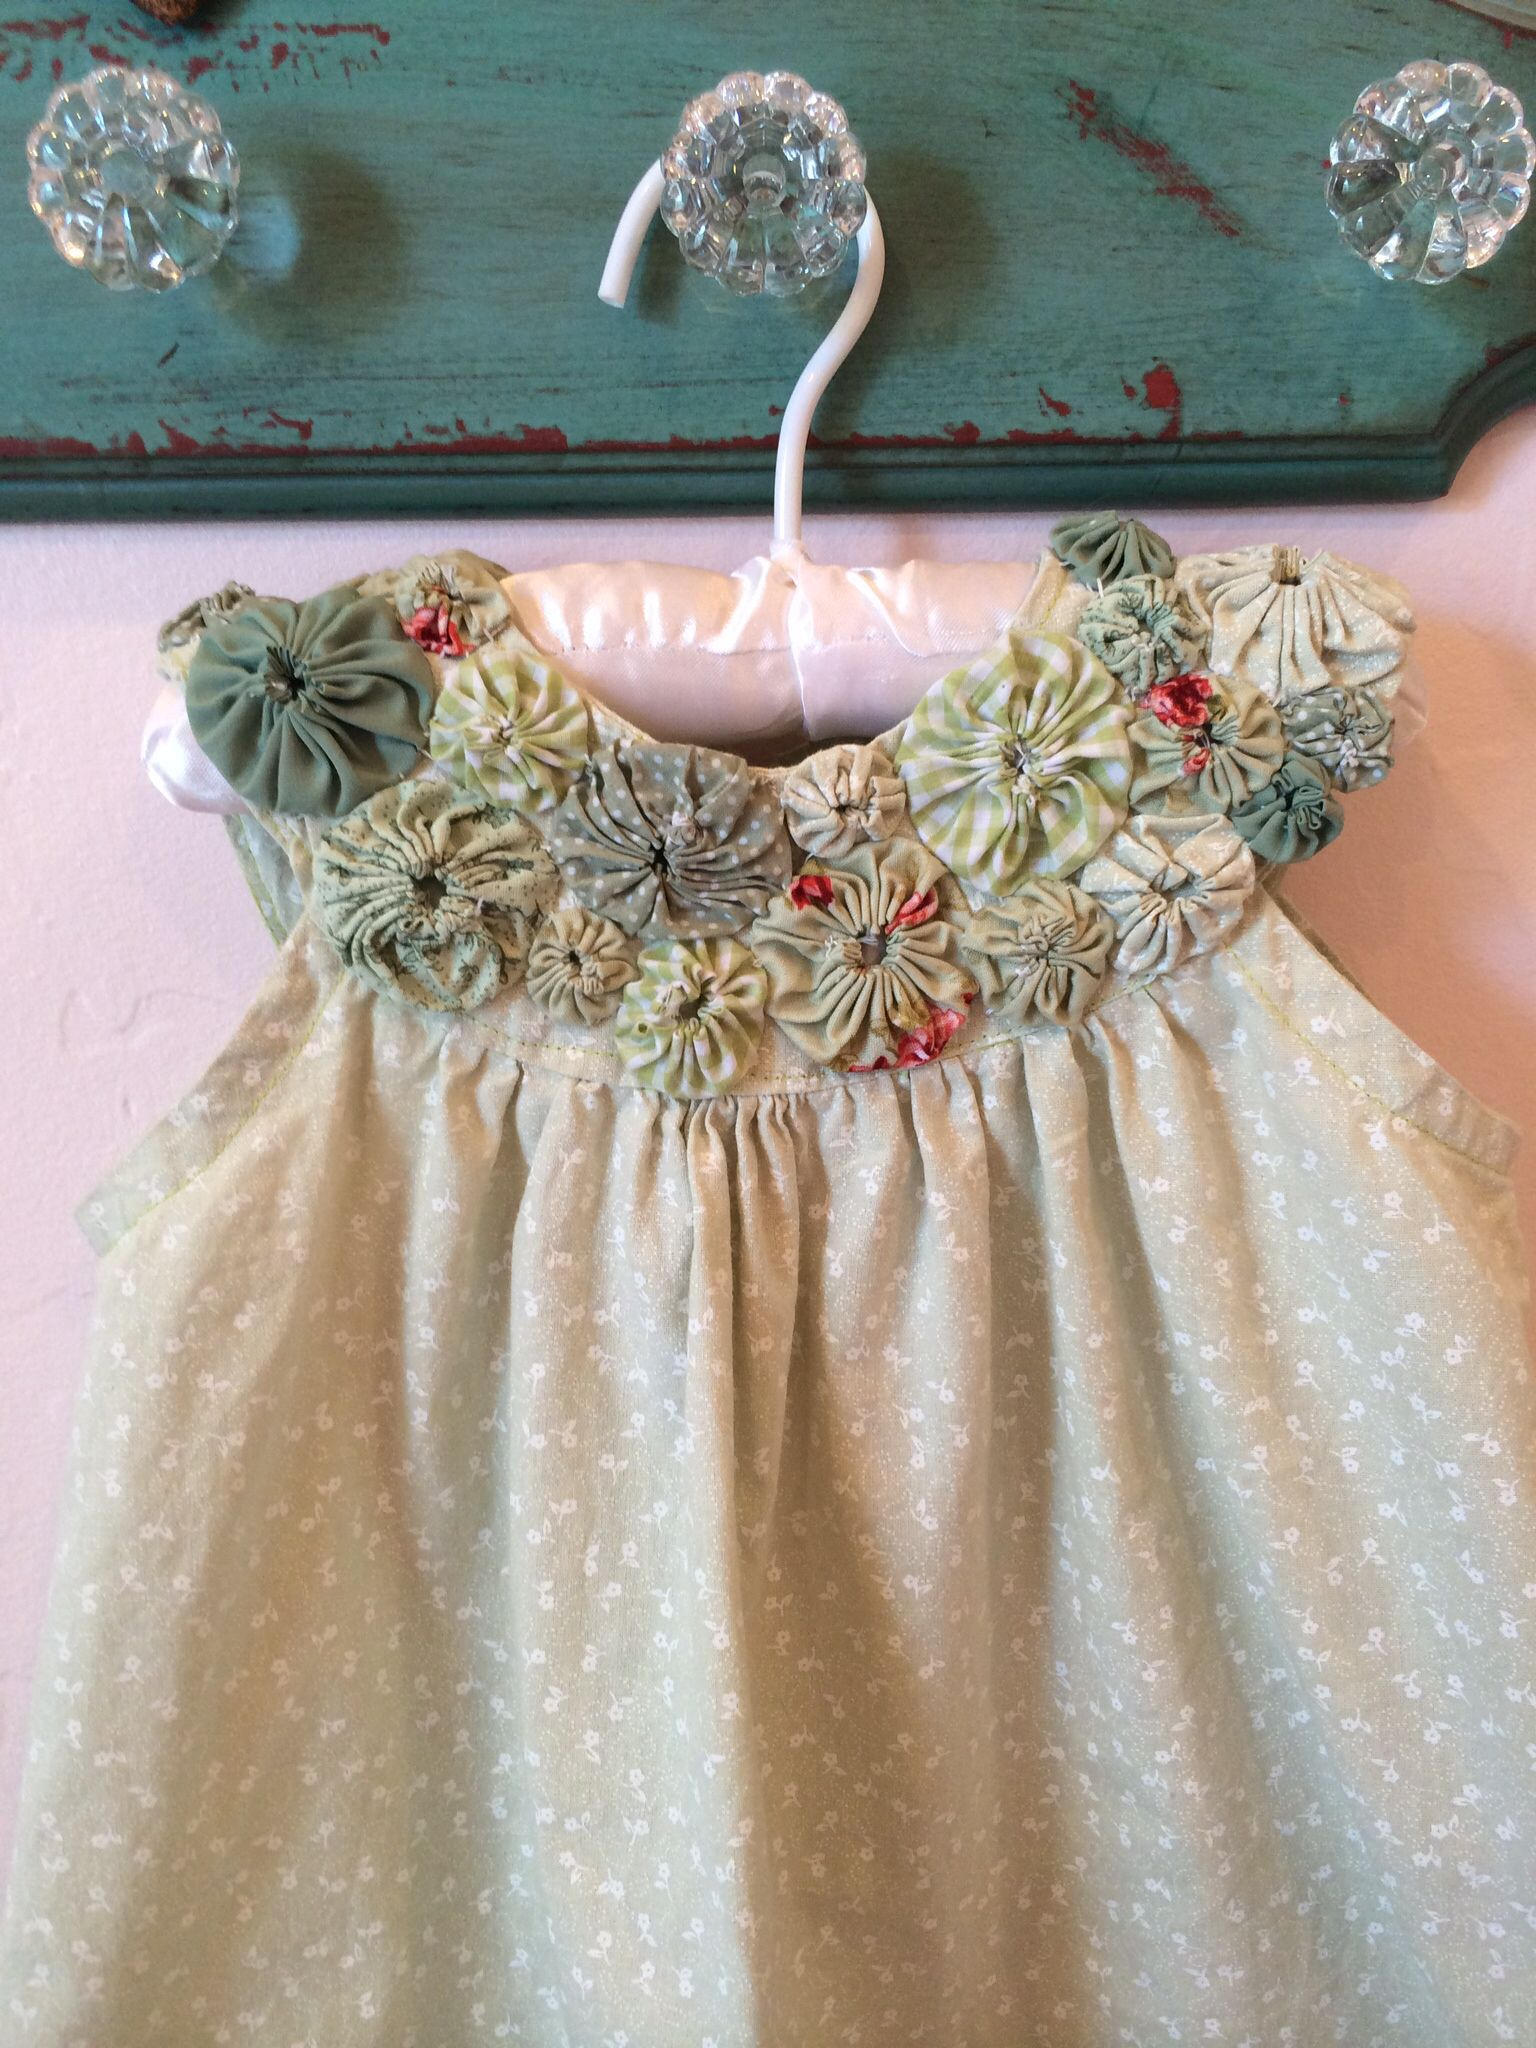 Yo yo dress - /angiefloyd9/sewing-little-girls/ BACK | Little dresses,  Little girl dresses, Baby sewing